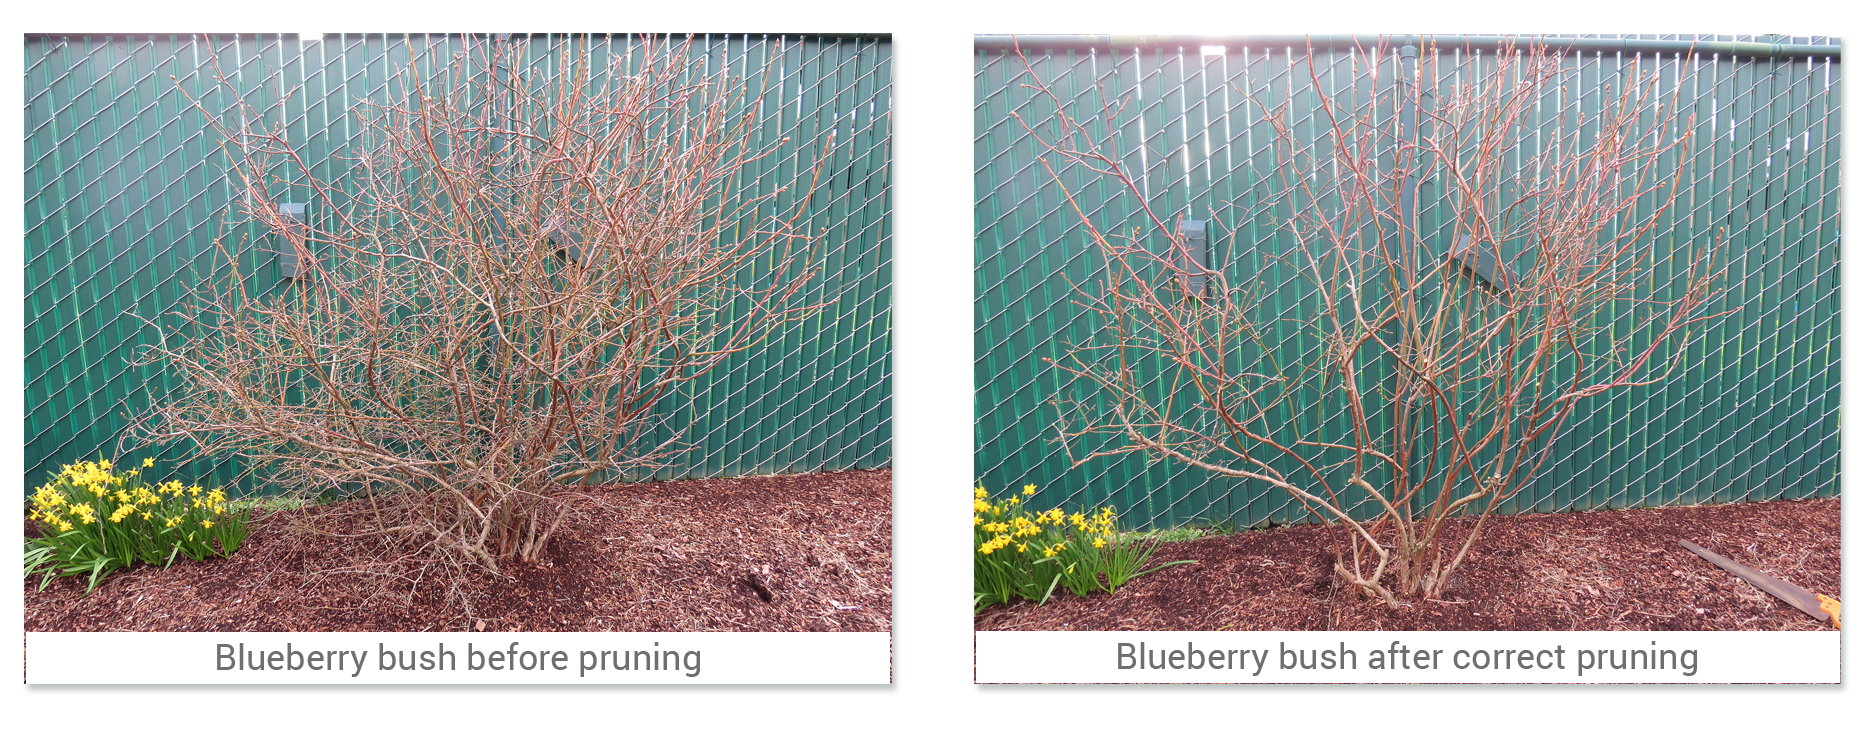 Pick up the pruners and head for the blueberries